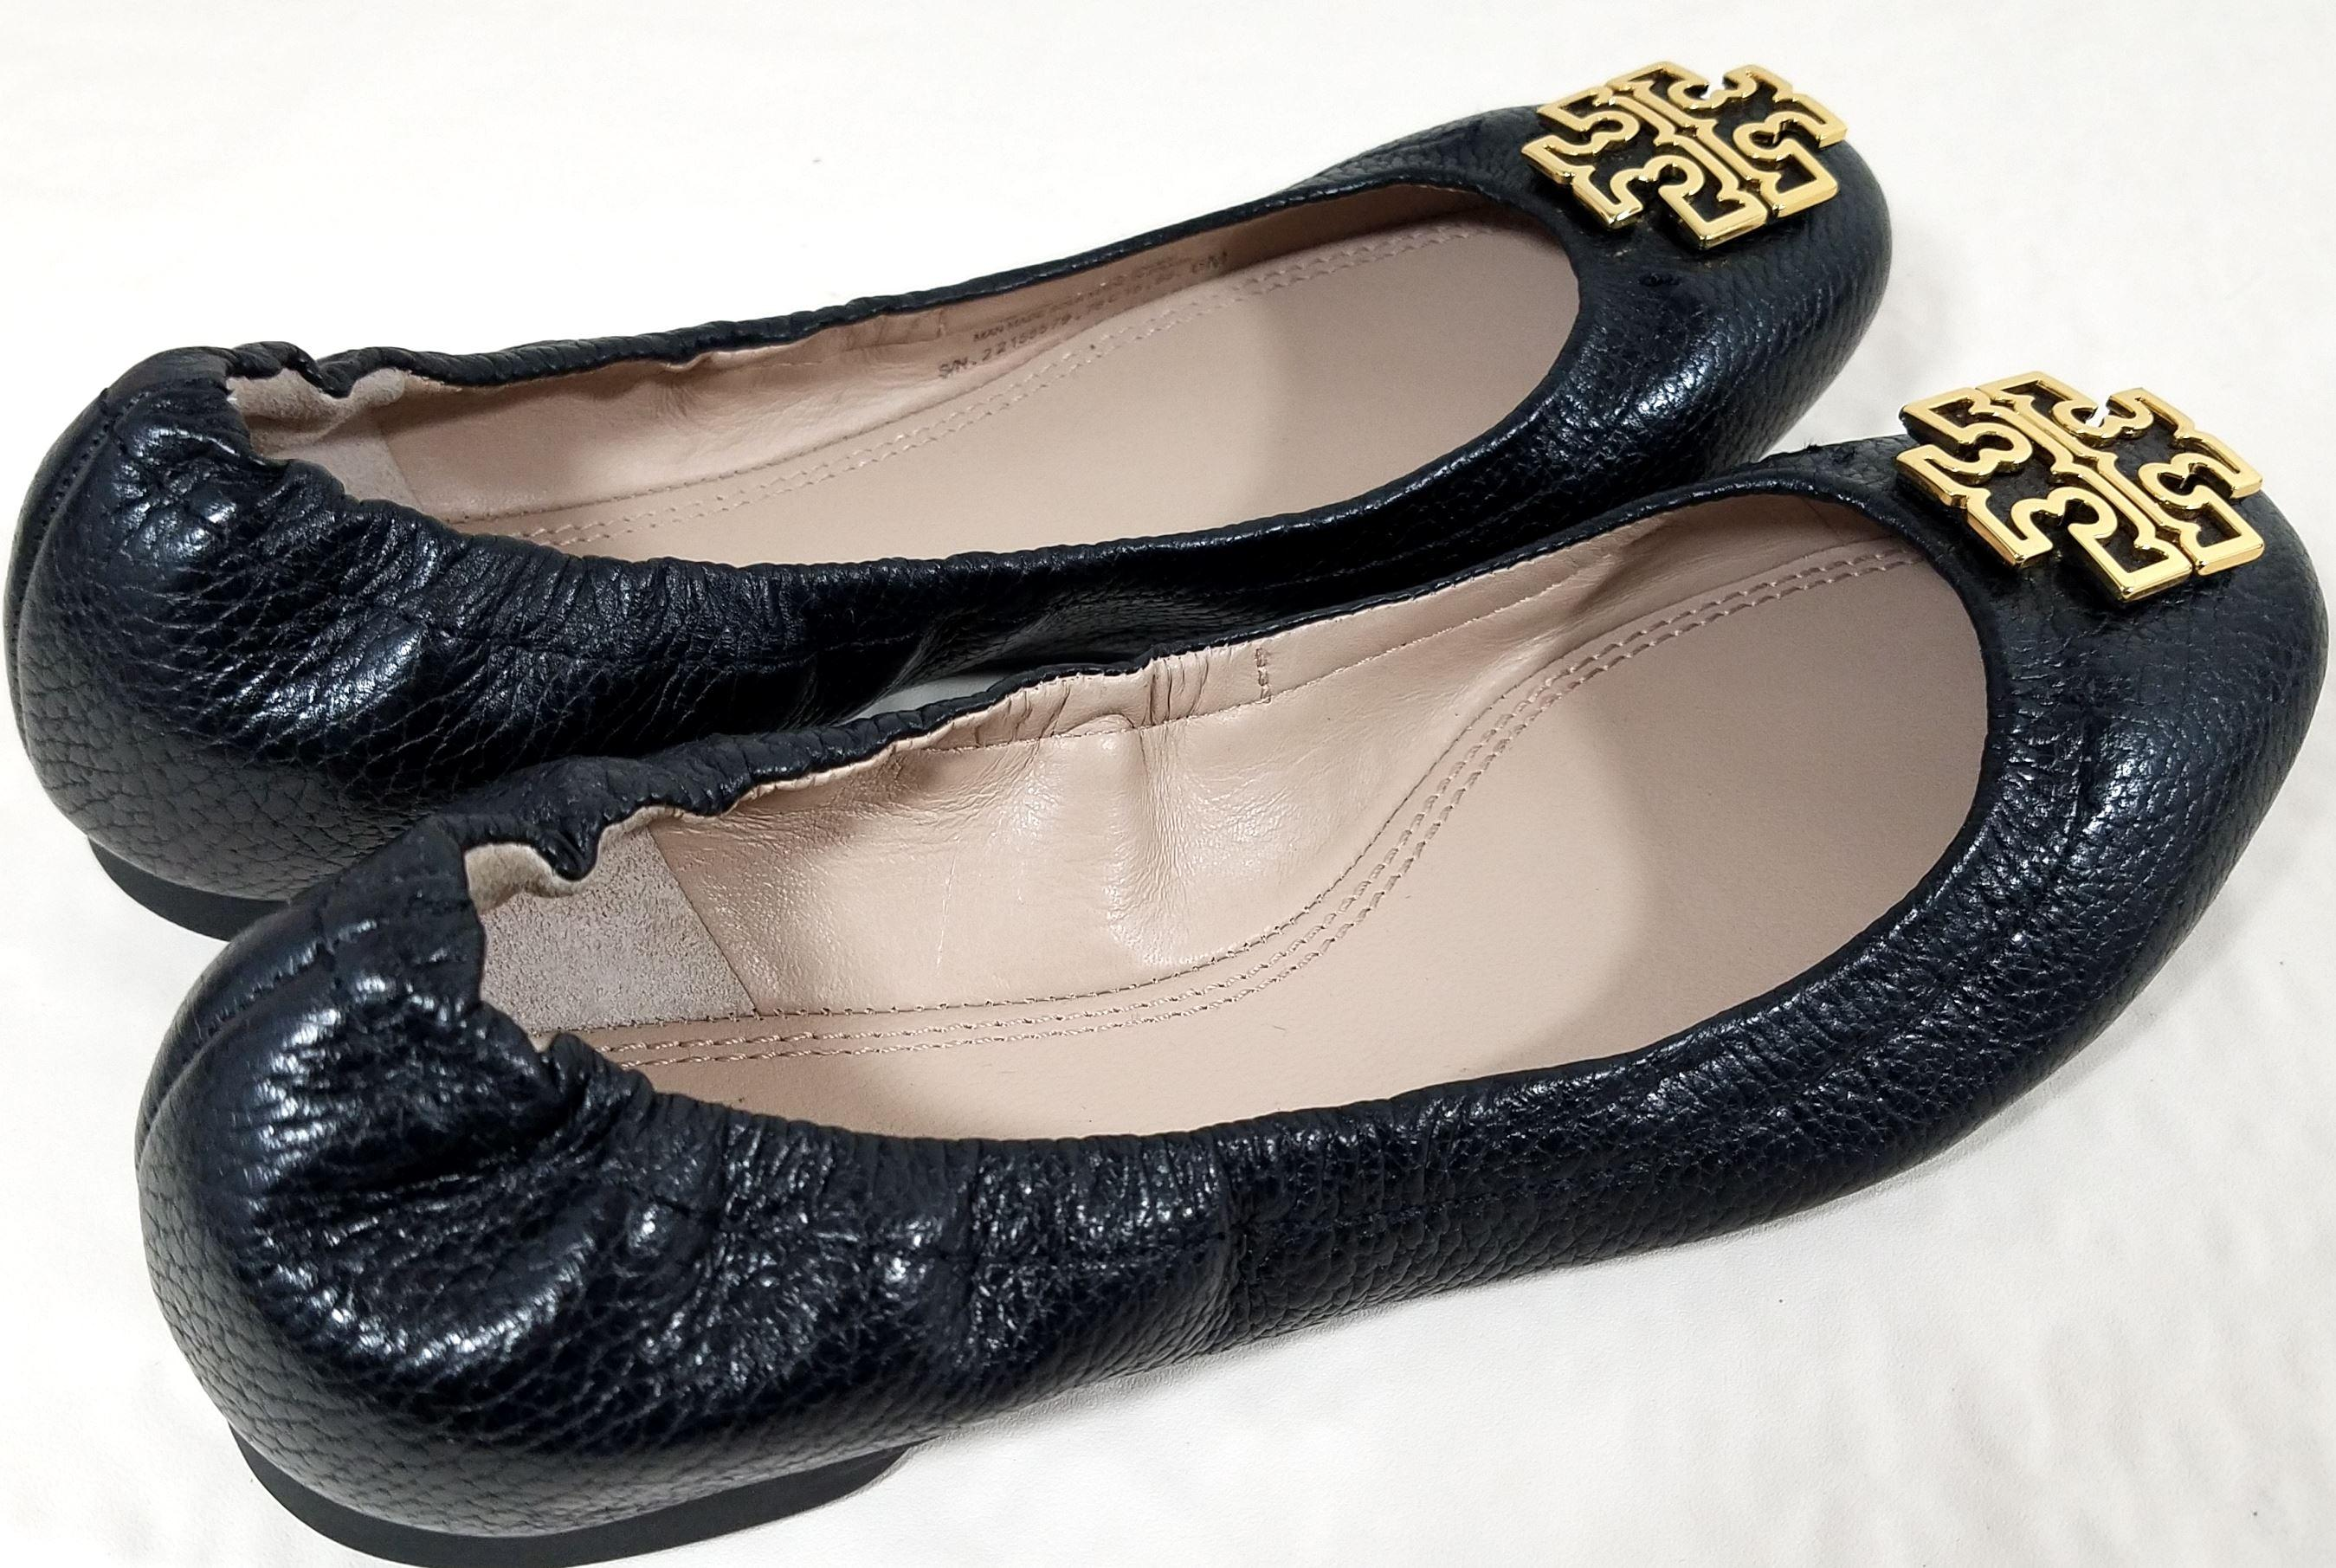 tory burch cuir noir melinda apparteHommes ts us ordinaires (taille us ts 7 m, b) 11a928